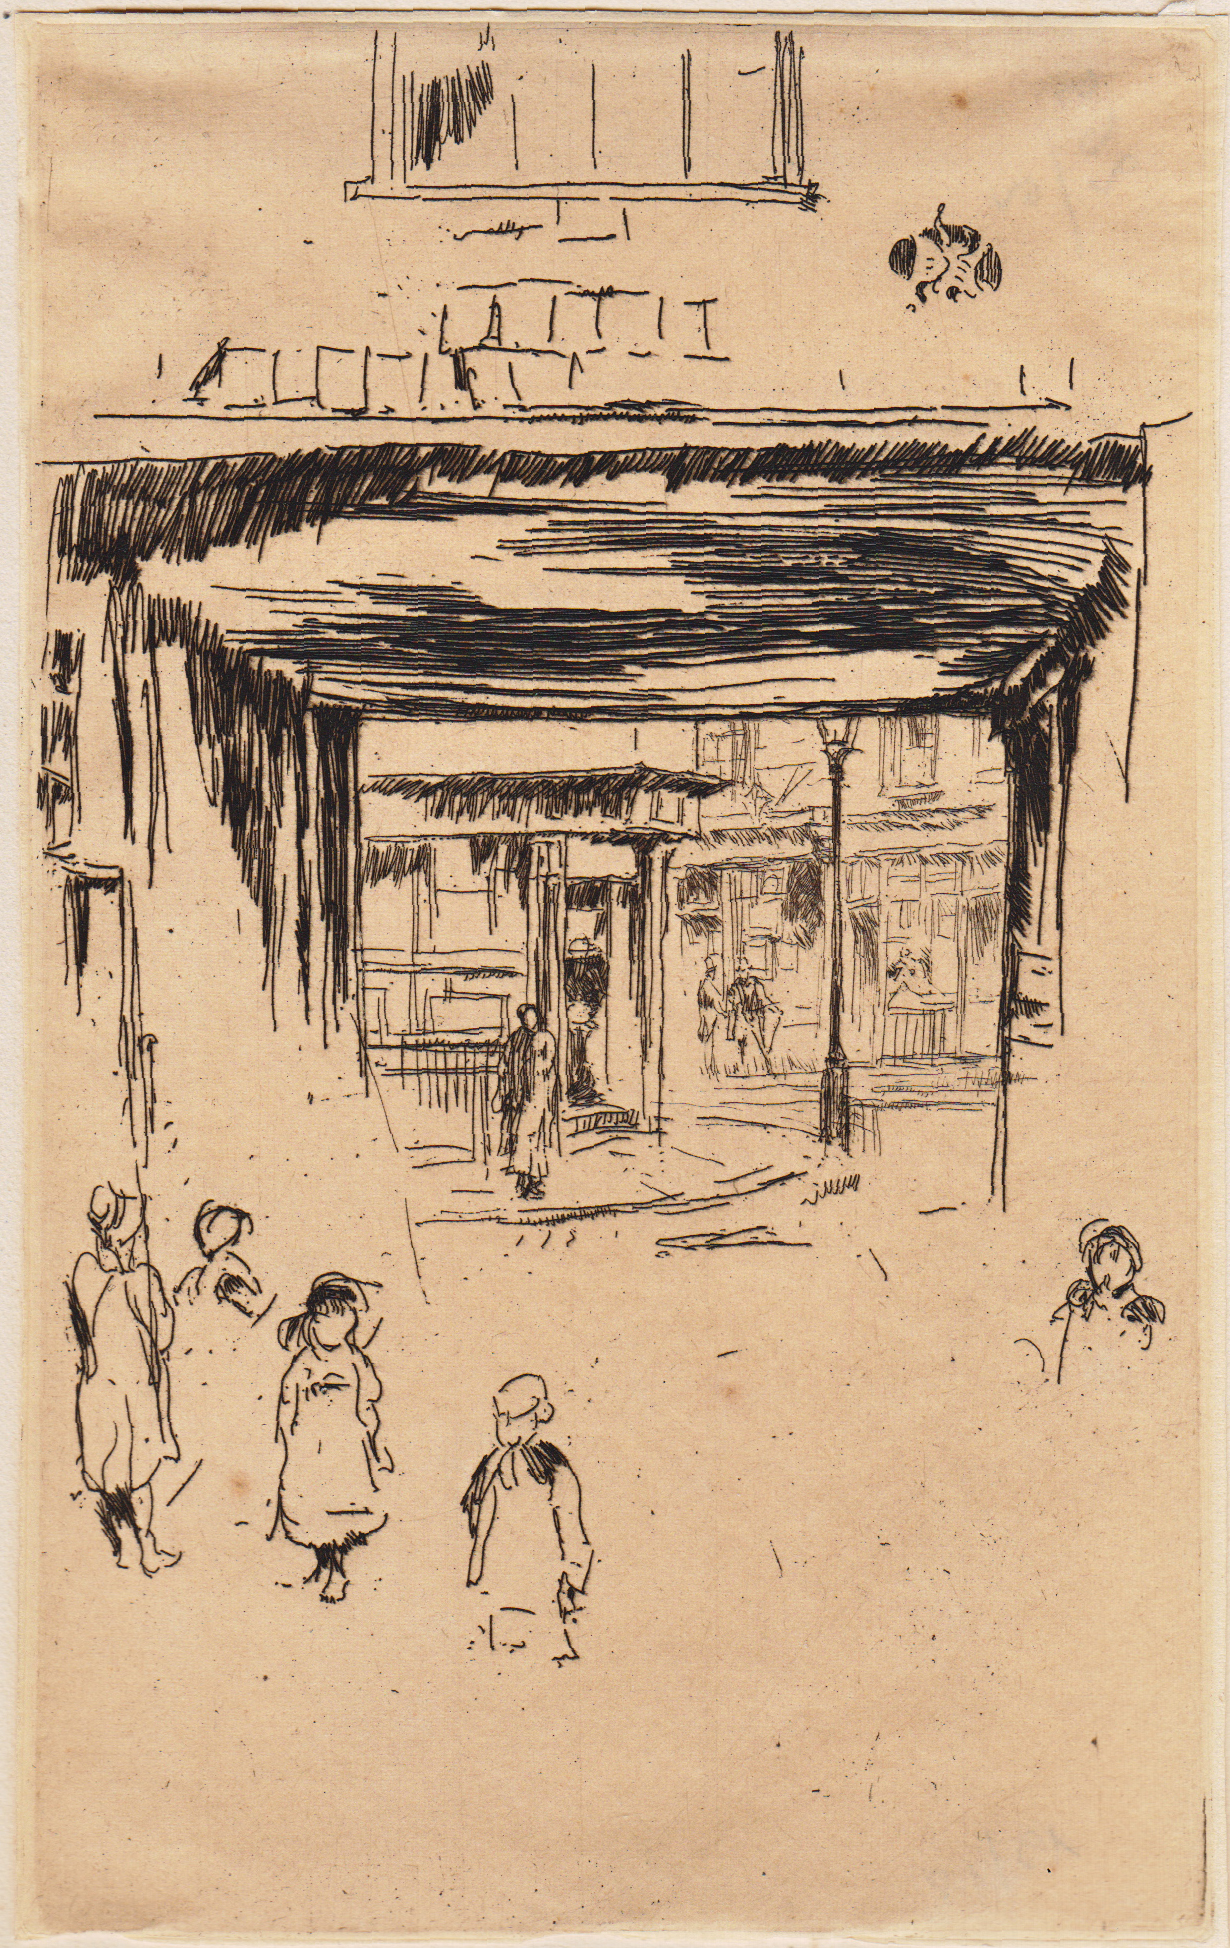 Whistler, Drury Lane, etching, 1880-1881